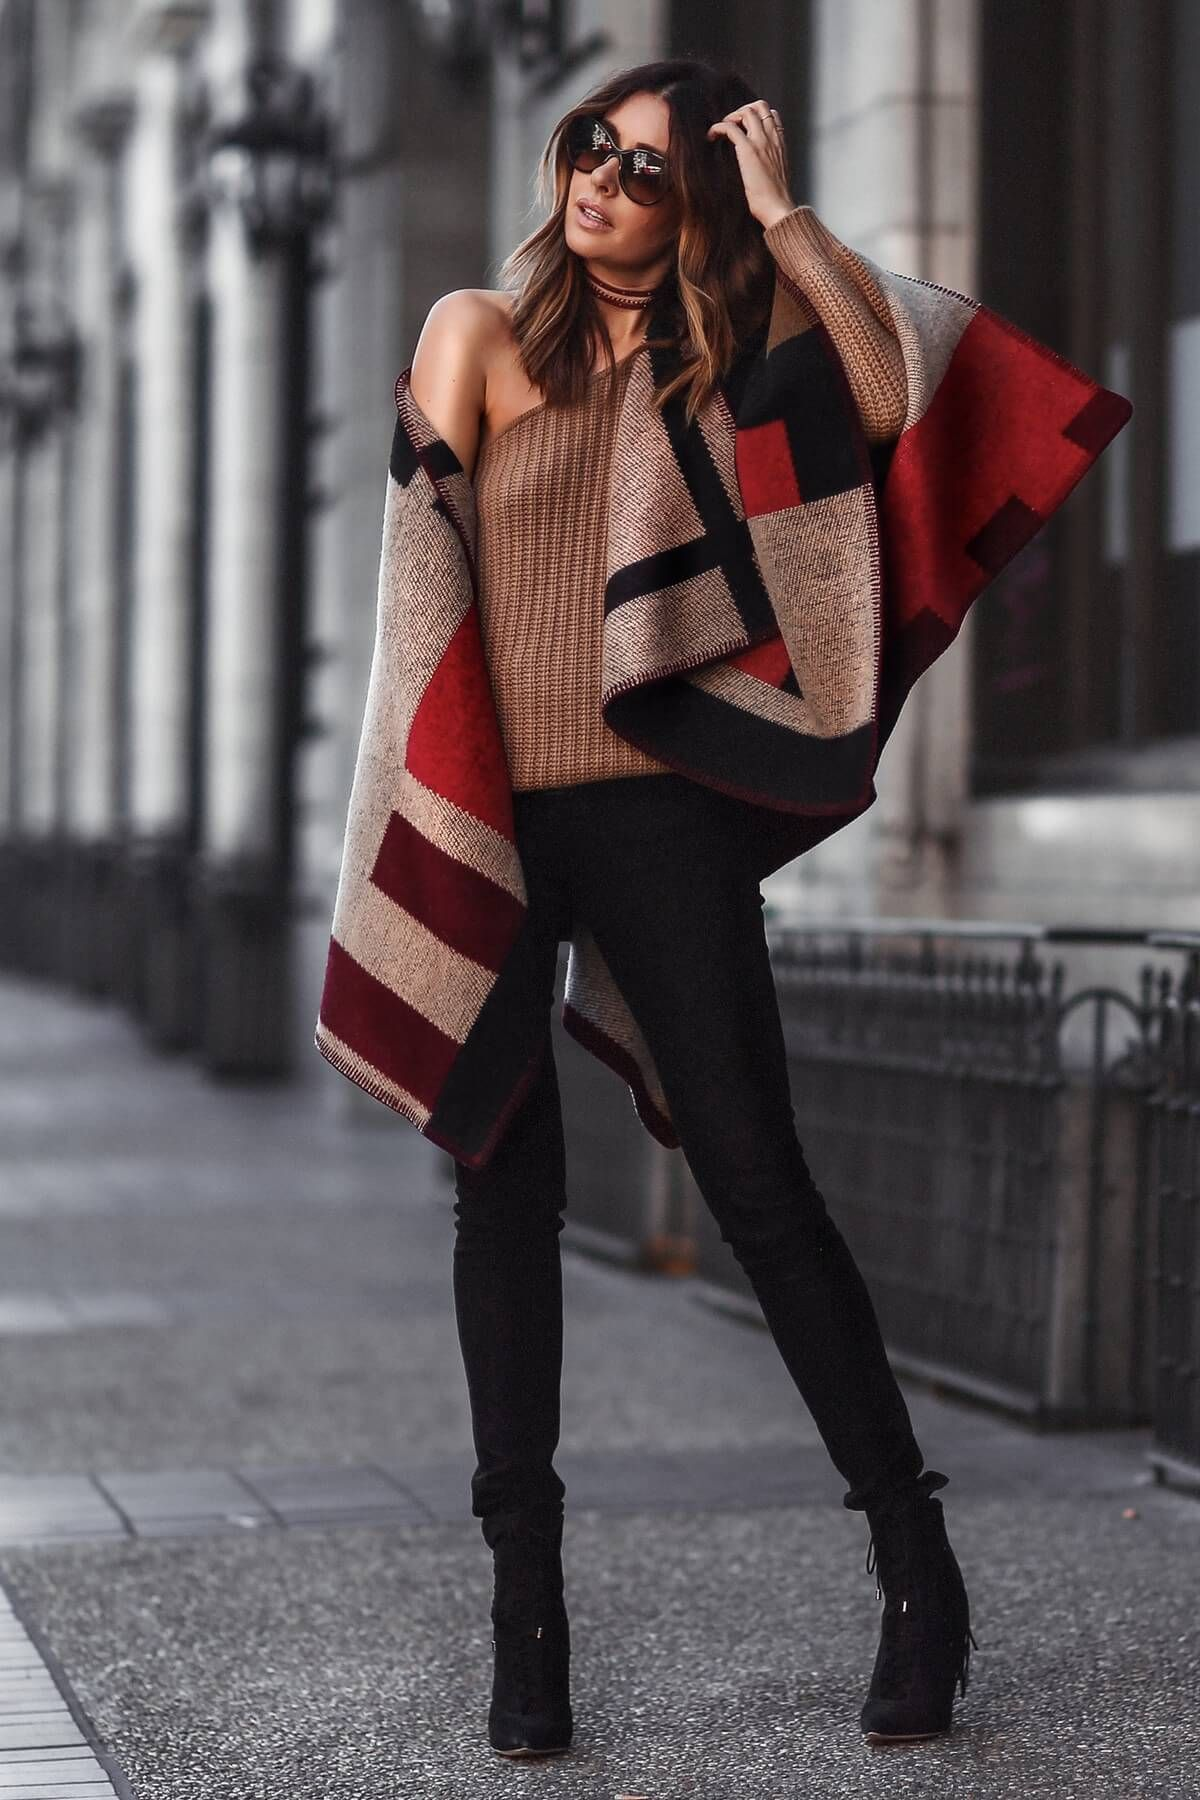 Forum on this topic: Chic Fall Coats for You to Cozy , chic-fall-coats-for-you-to-cozy/